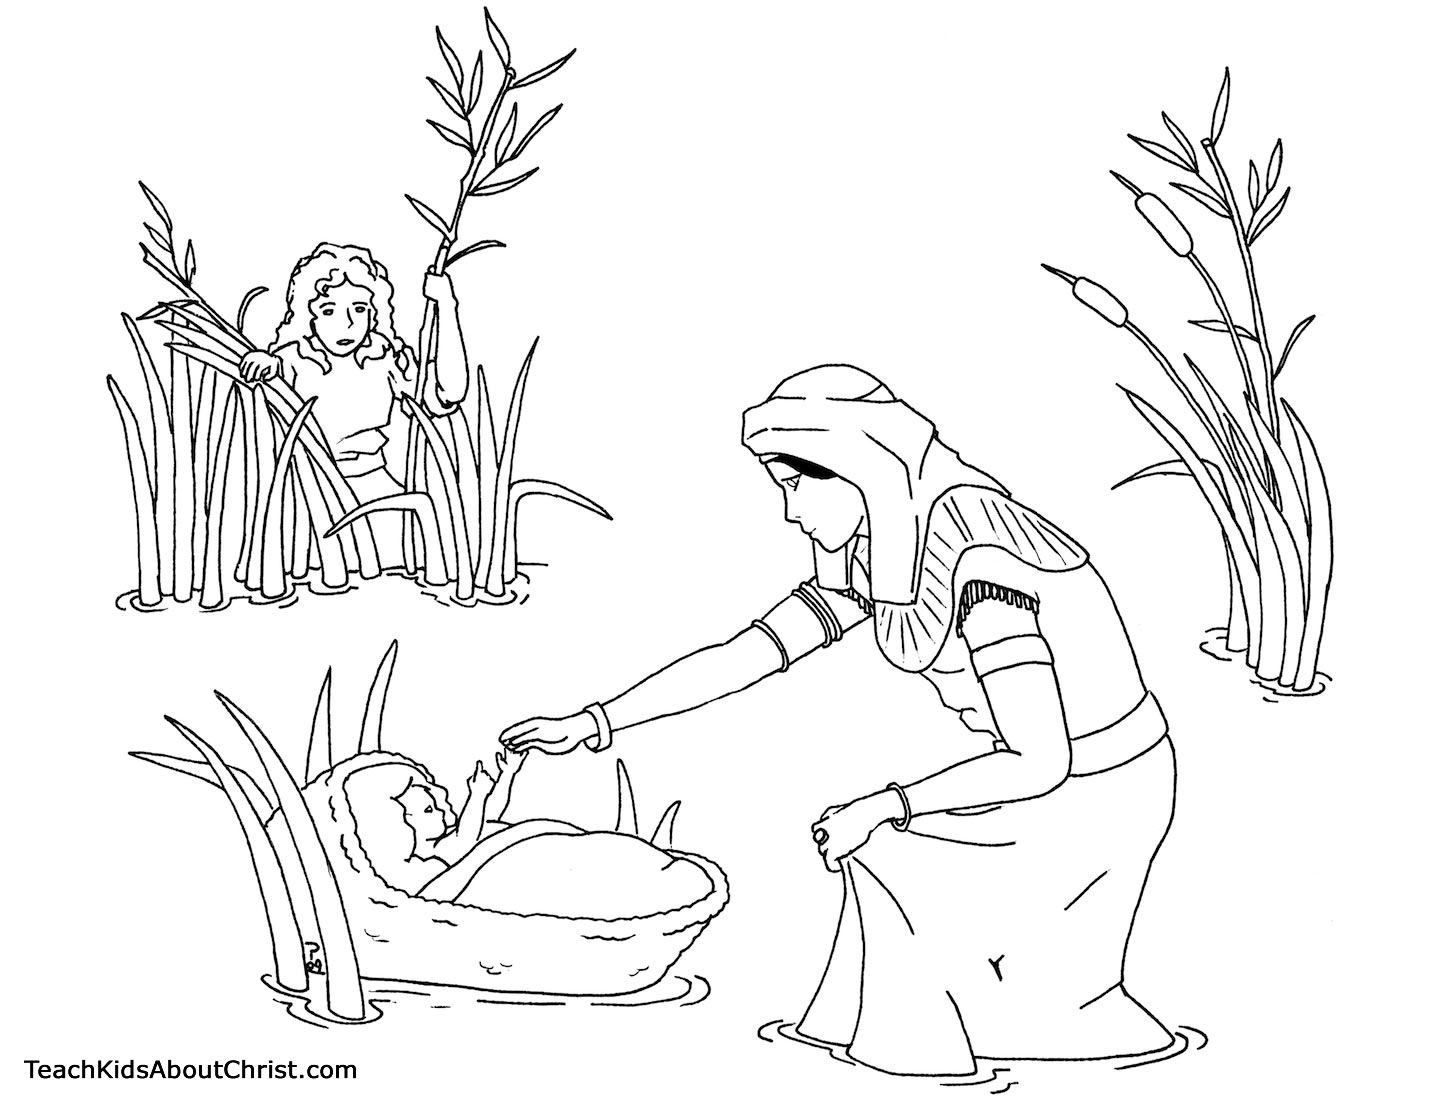 Baby Moses in the reeds found by Pharaoh's daughter. Bible